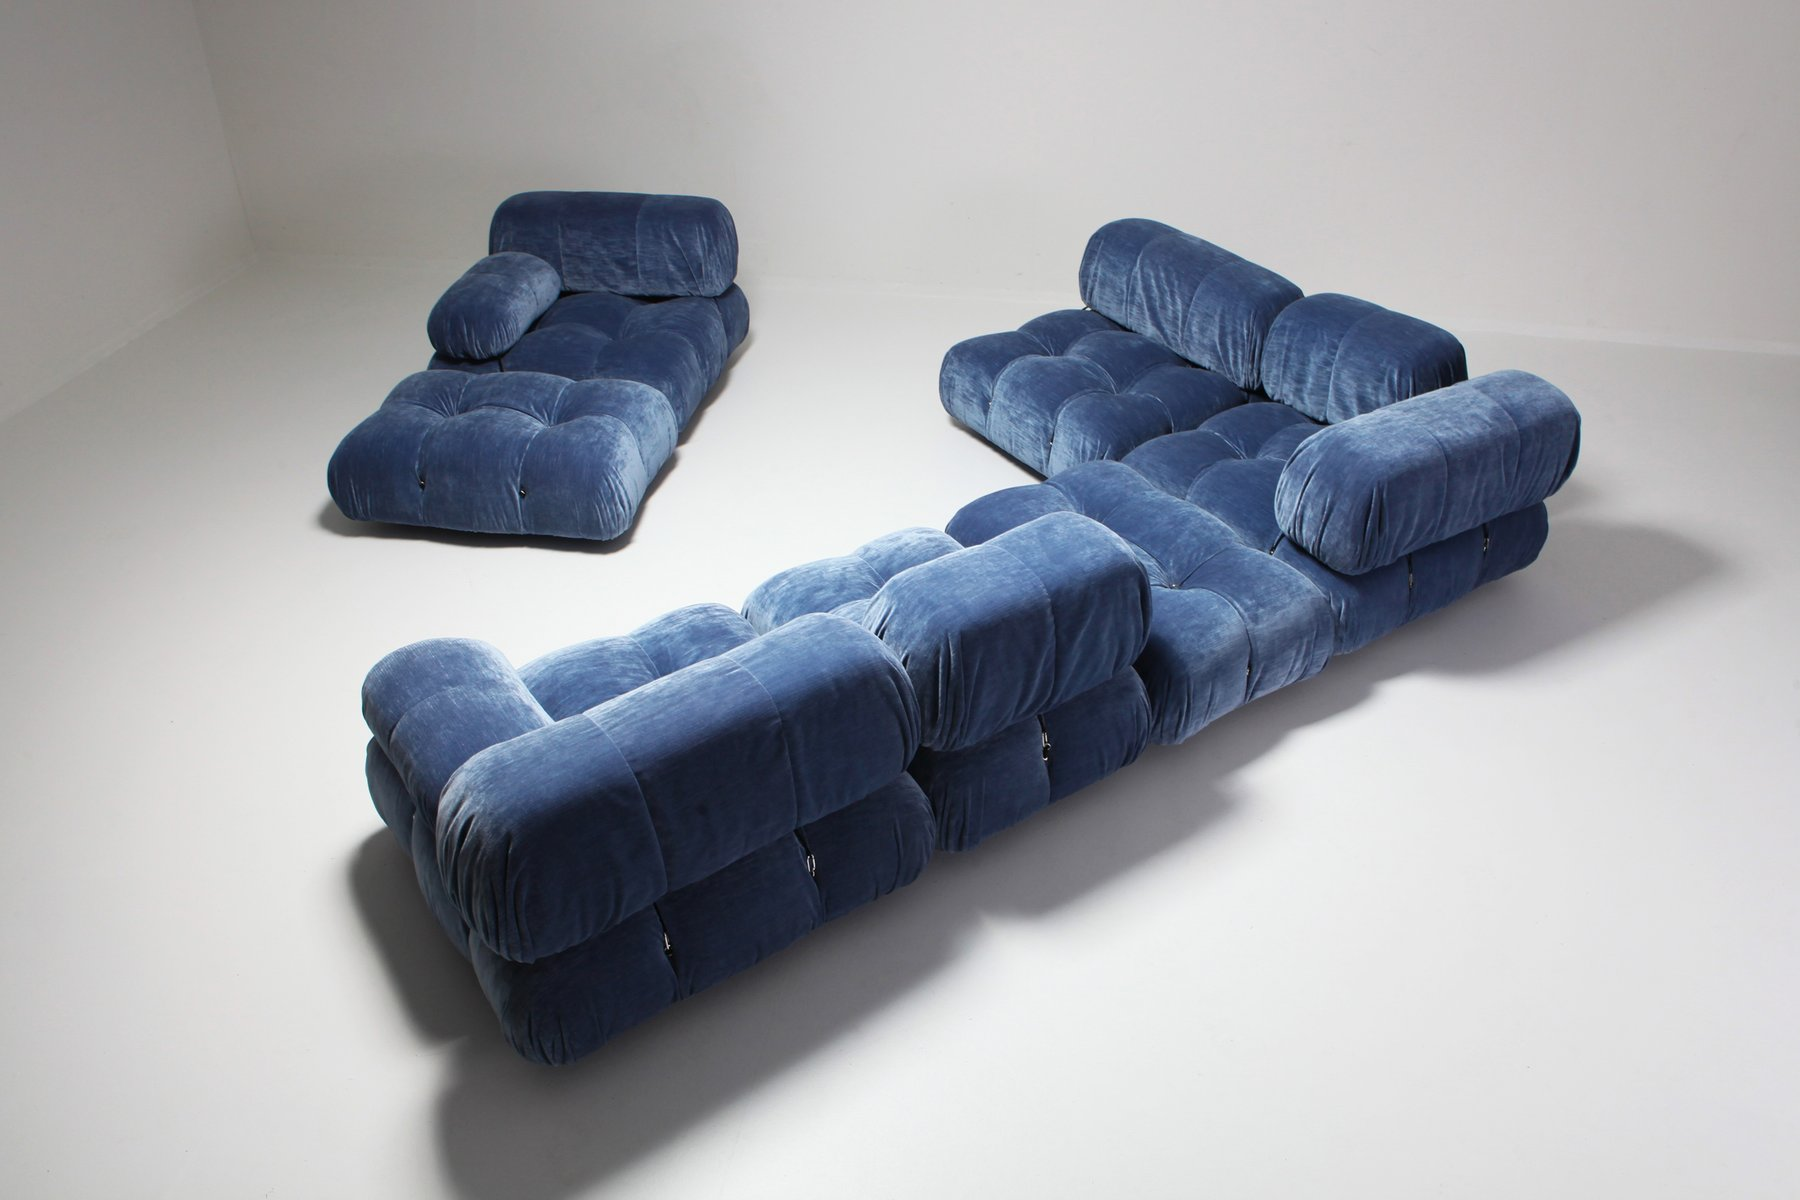 Blue Velvet Sectional Camaleonda Sofa By Mario Bellini For